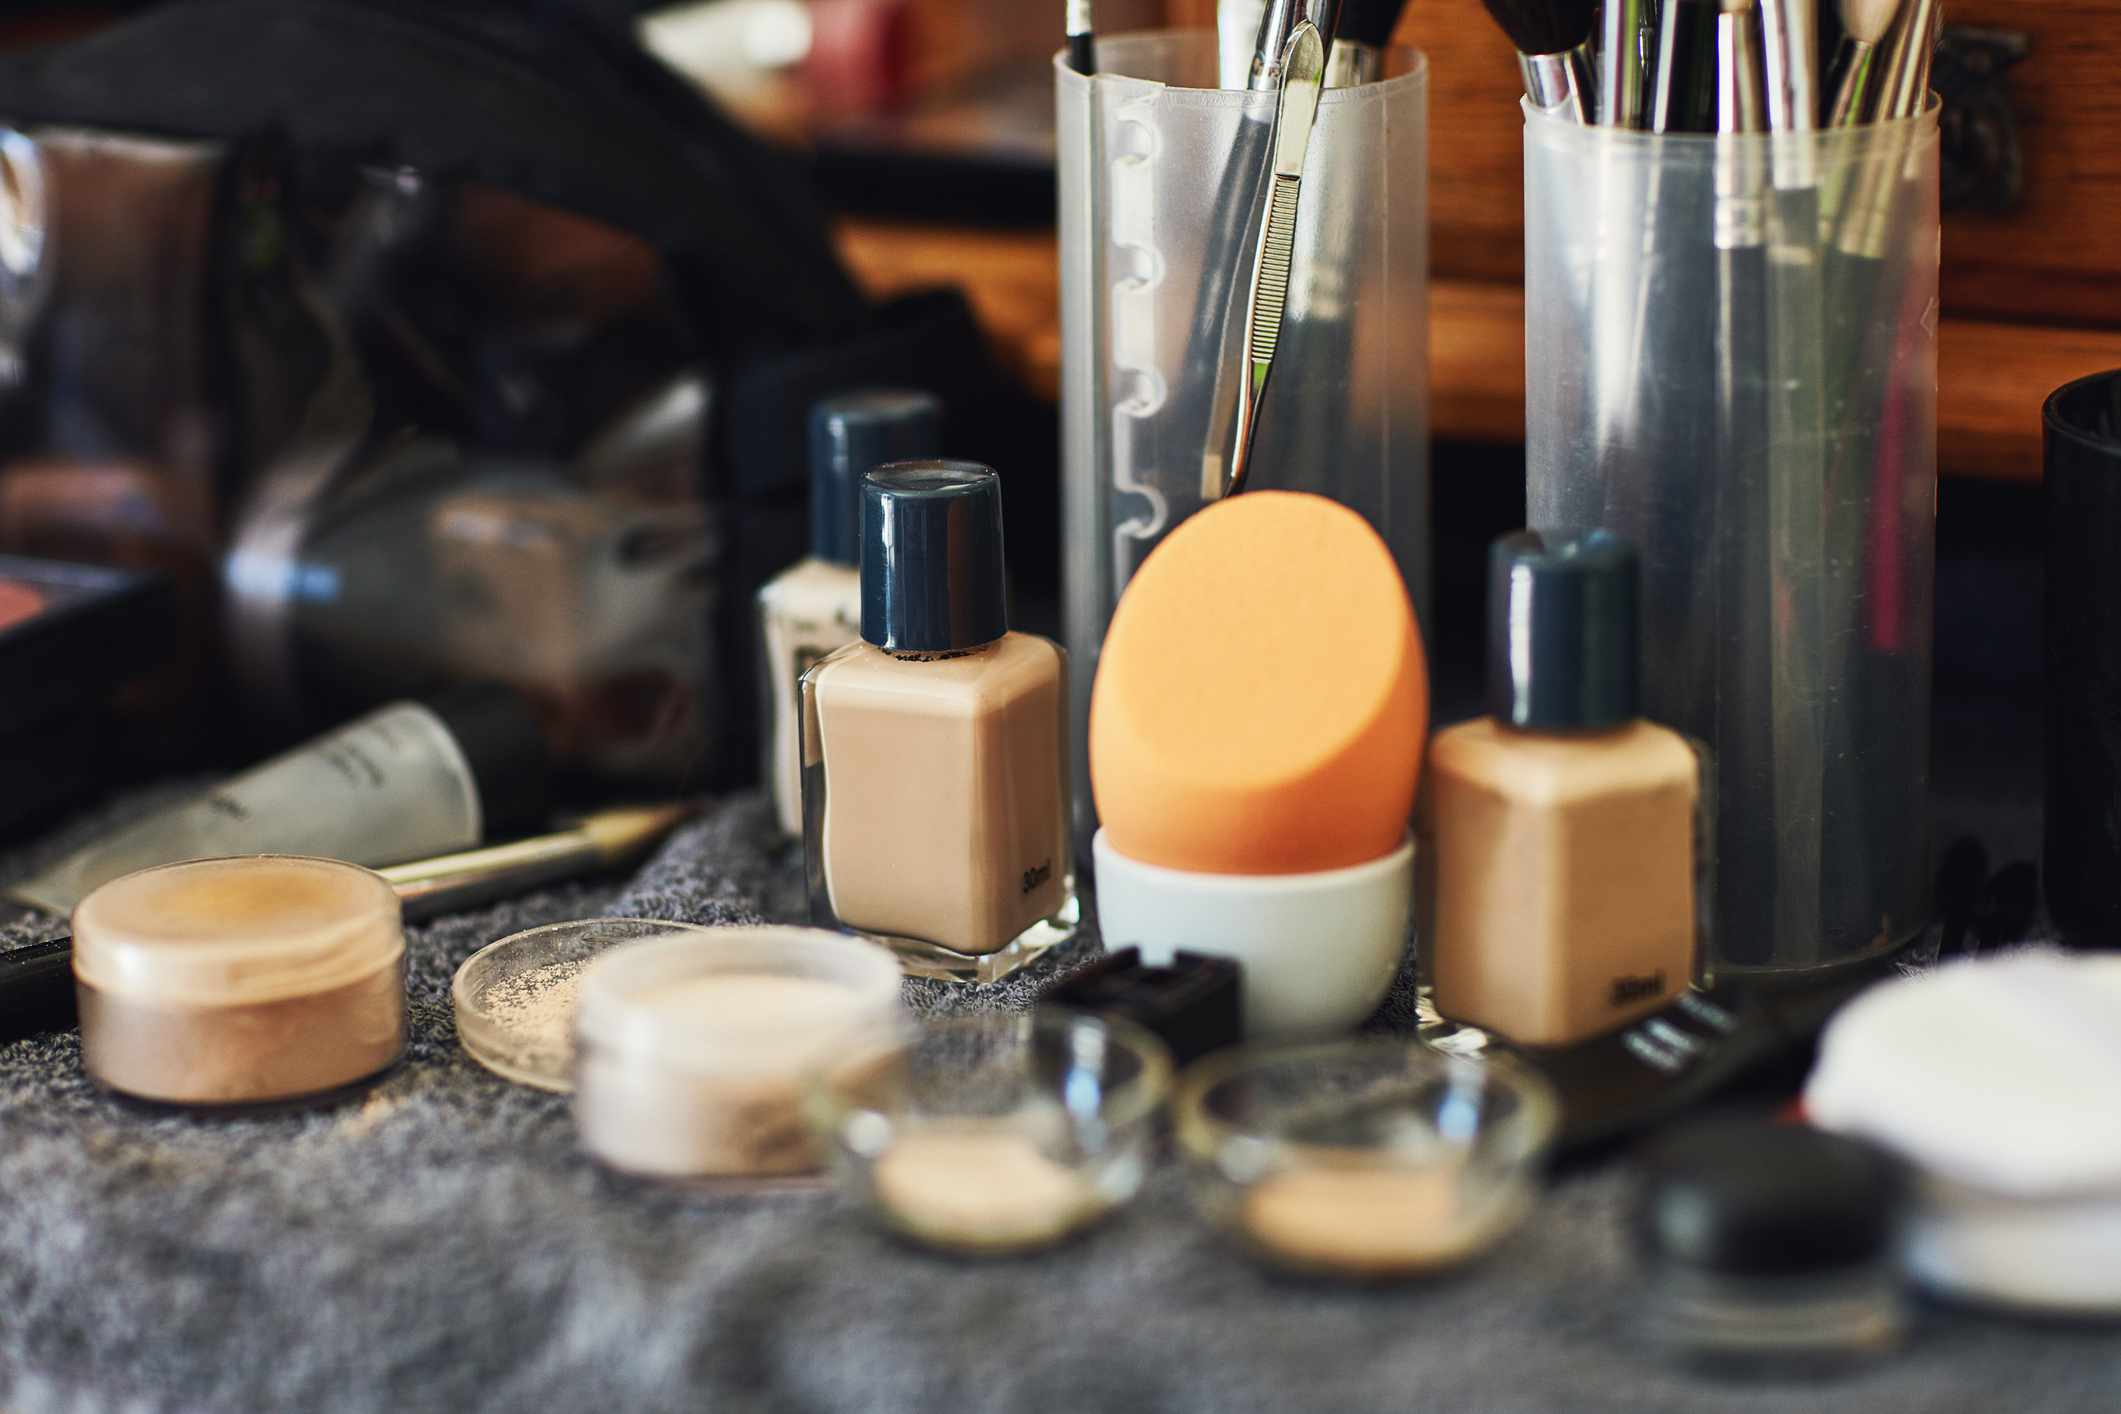 Make-up on a towel and in plastic containers and bags.